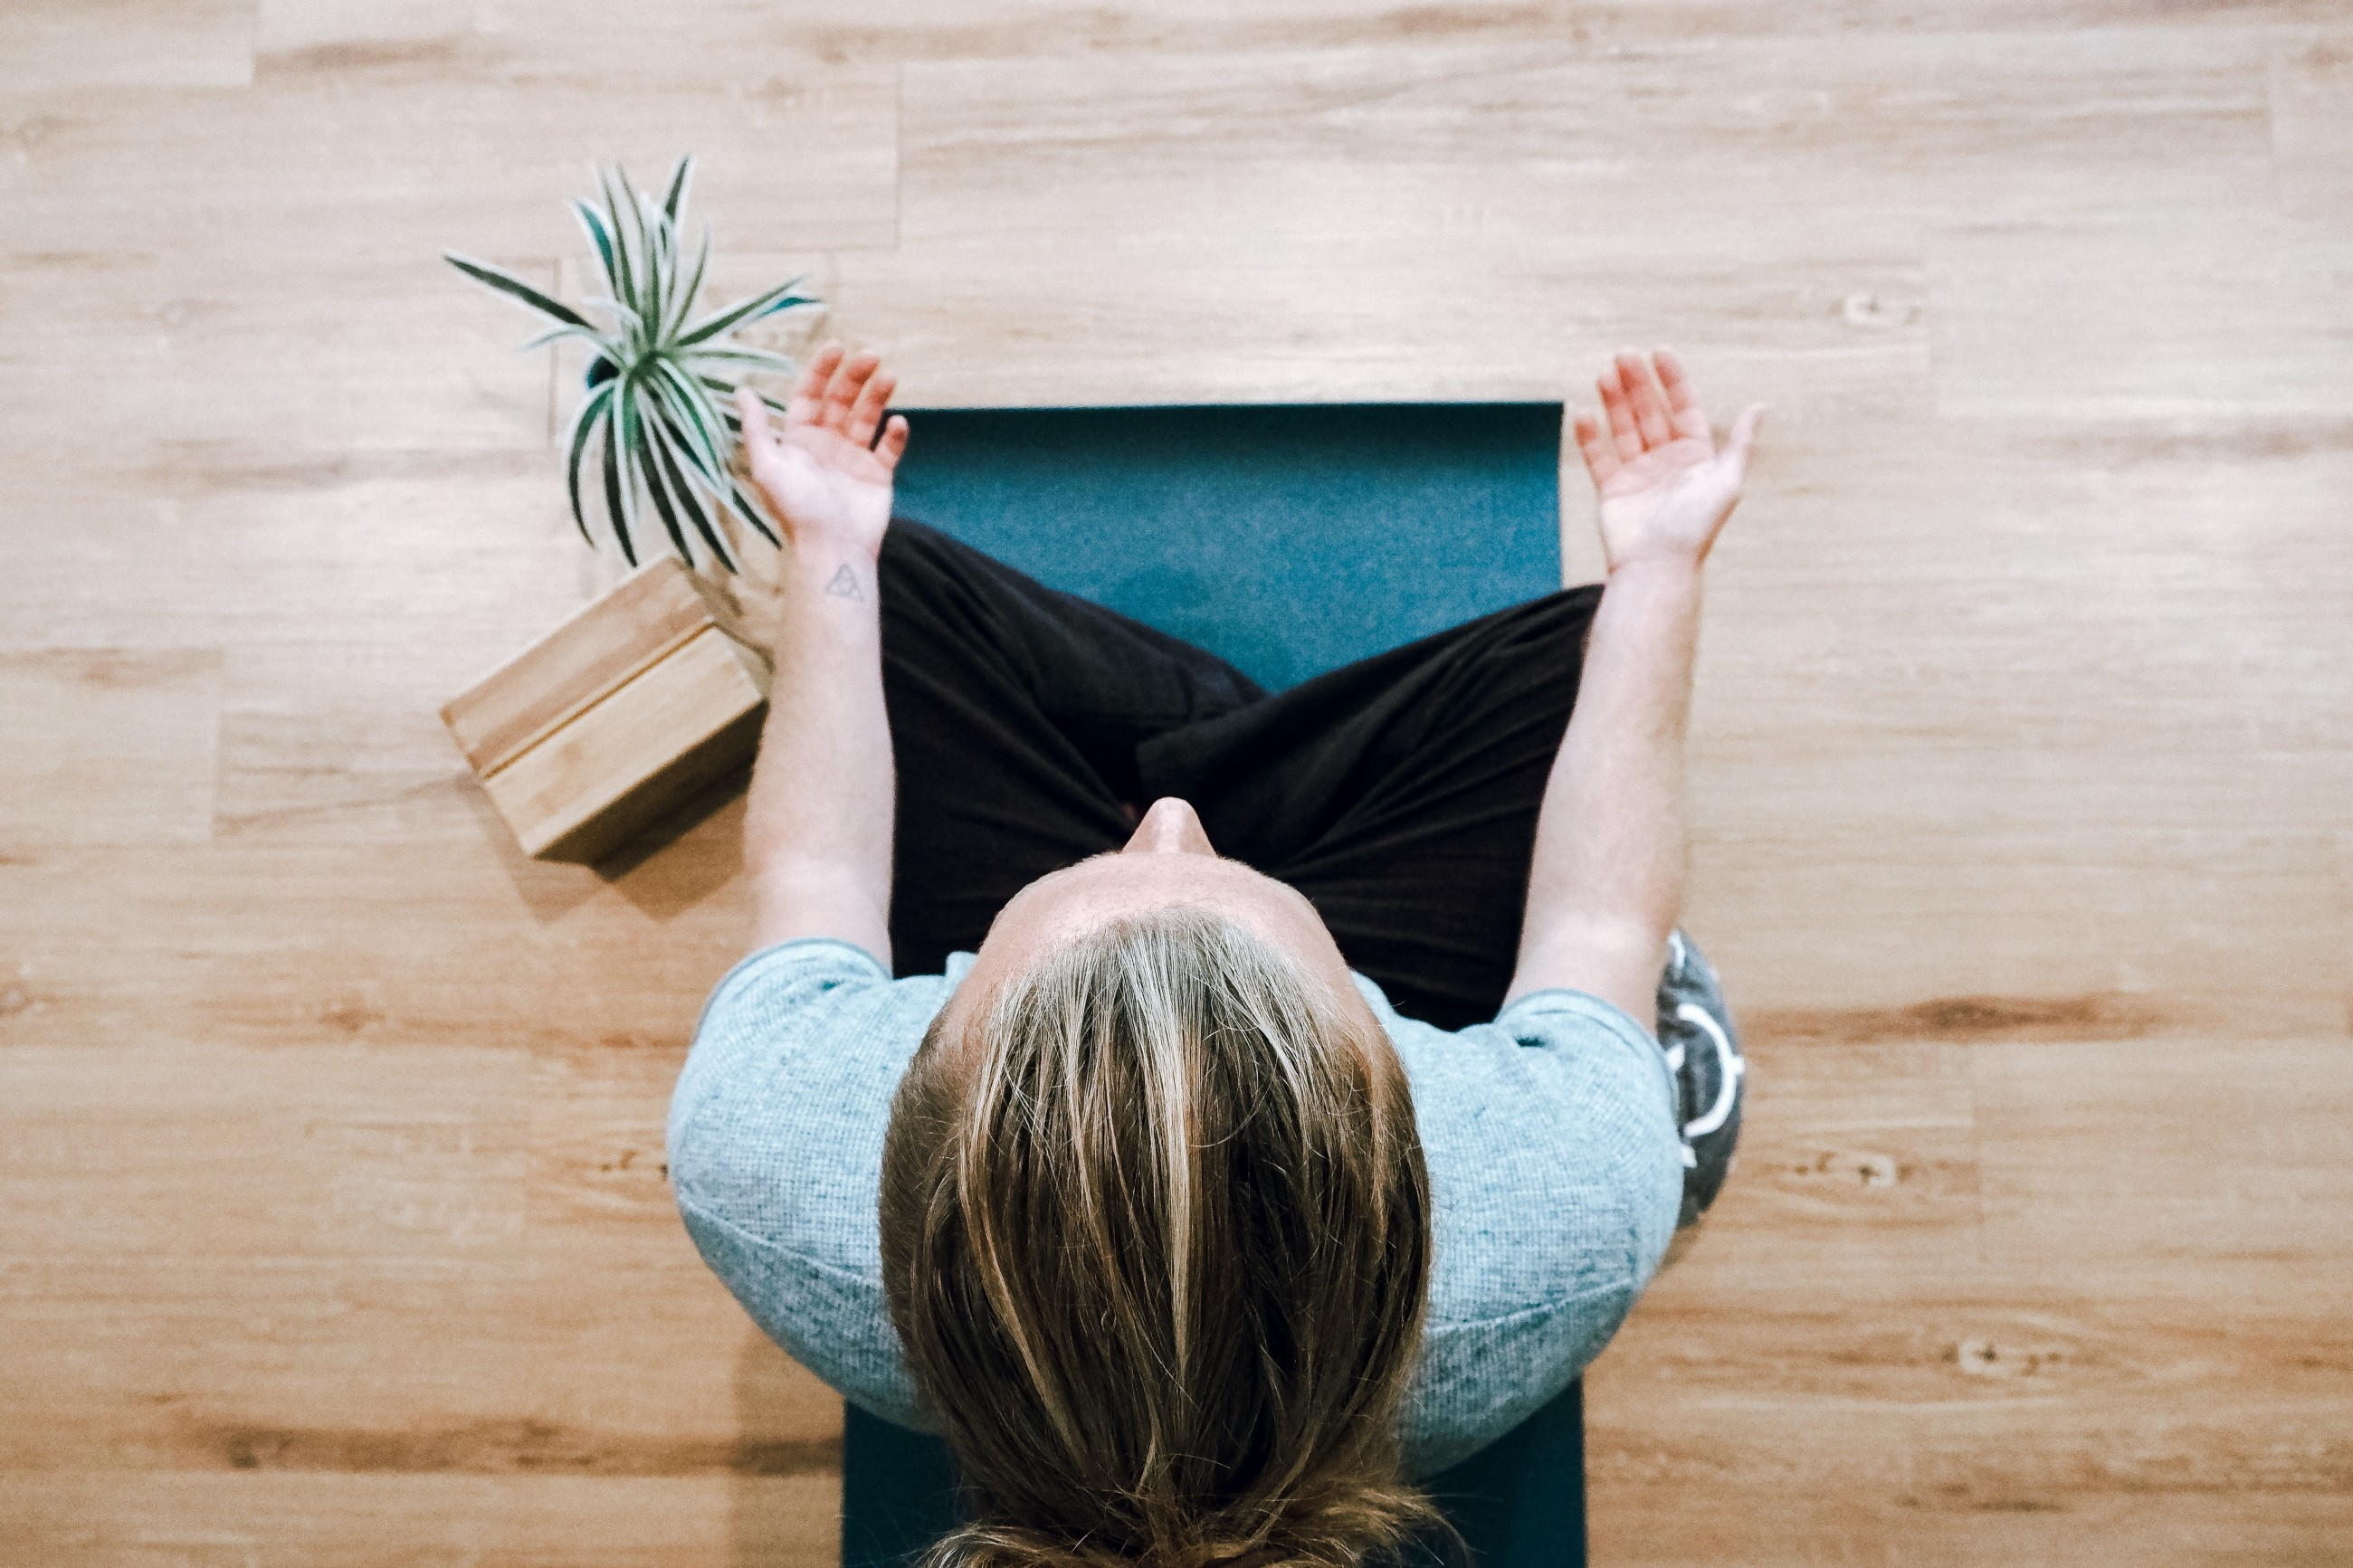 , 10 Mindful Practices to Embrace in 2021 to Make the Most of the Year